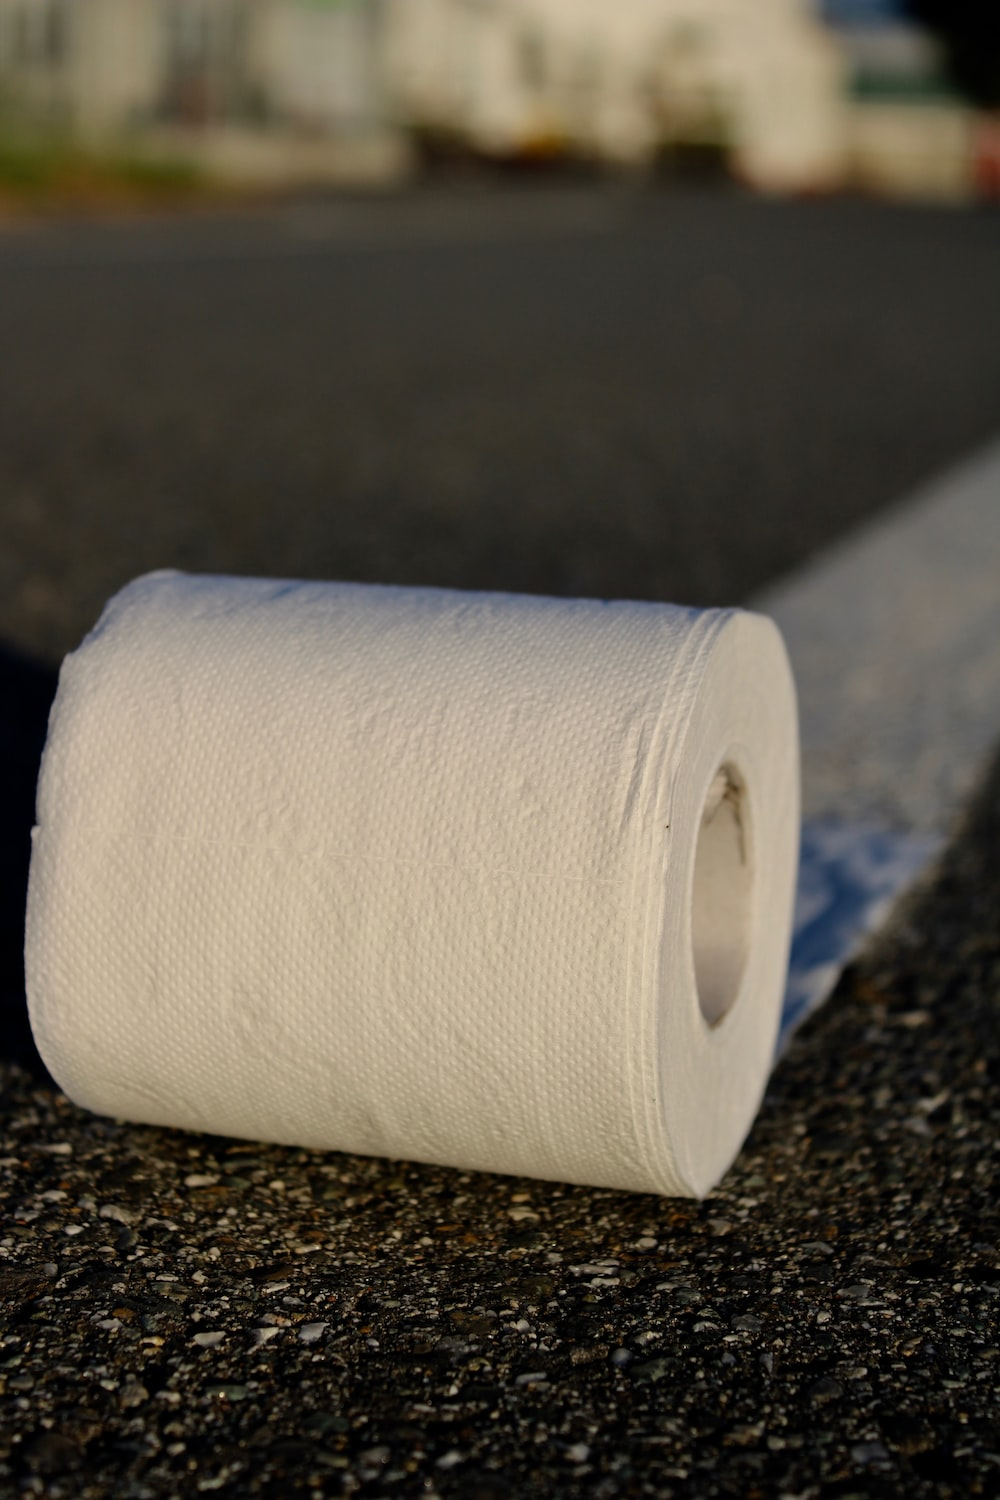 white toilet paper roll on black marble table